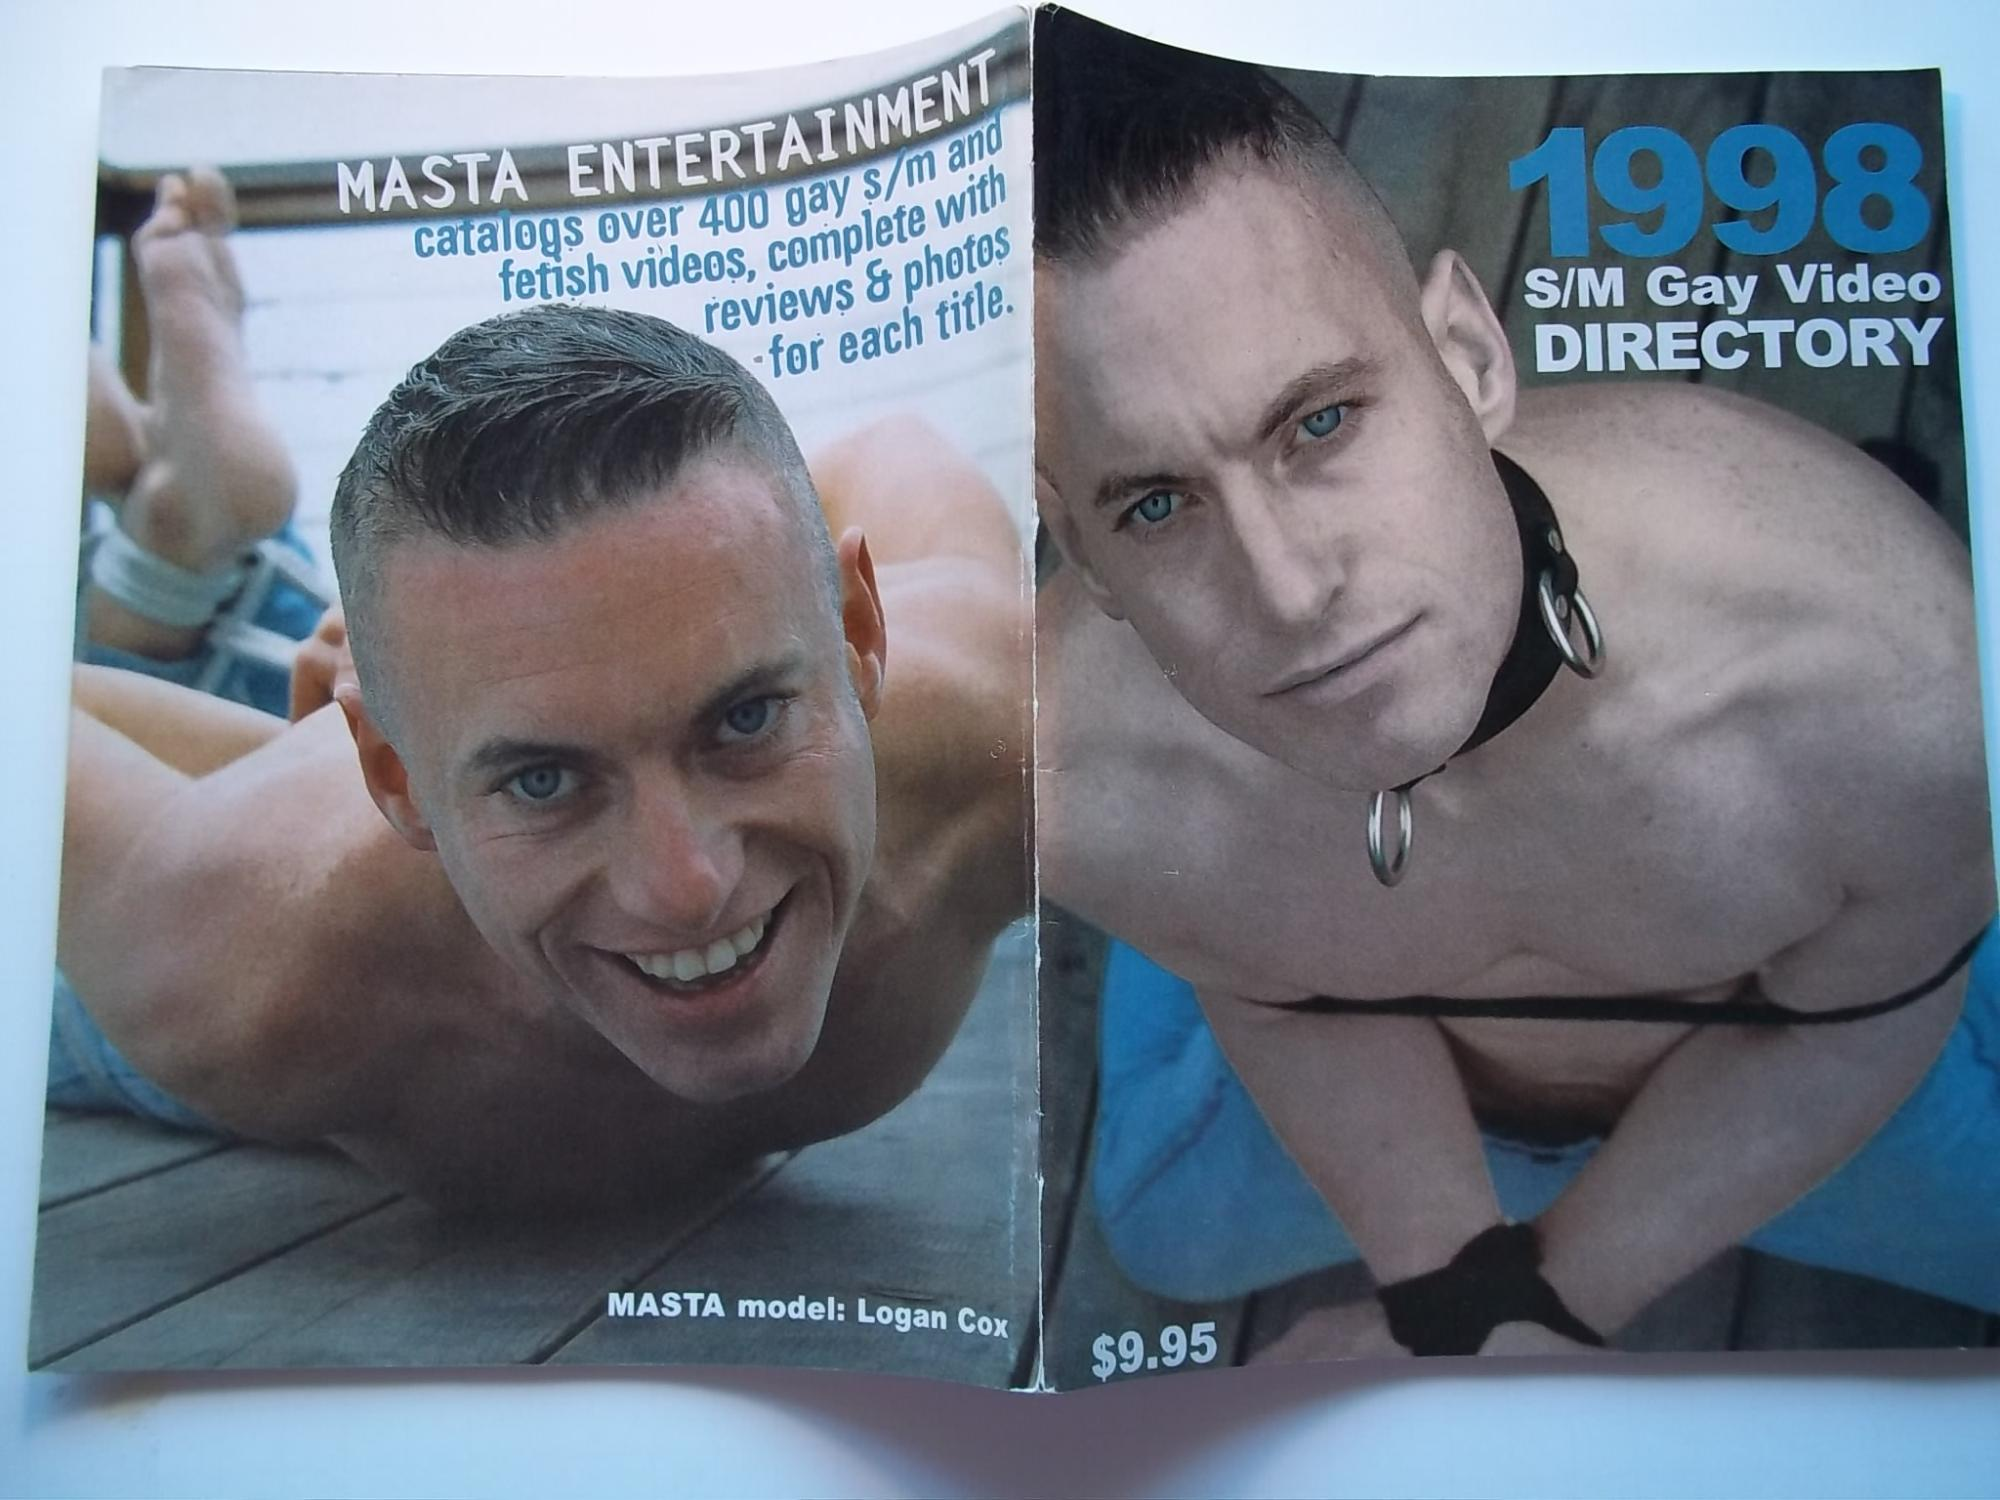 1998 S/M Gay Video Directory (Male Nude Leather Bondage Fetish Photographs Photos) Steve Landess and Masta Entertainment (Publishers)